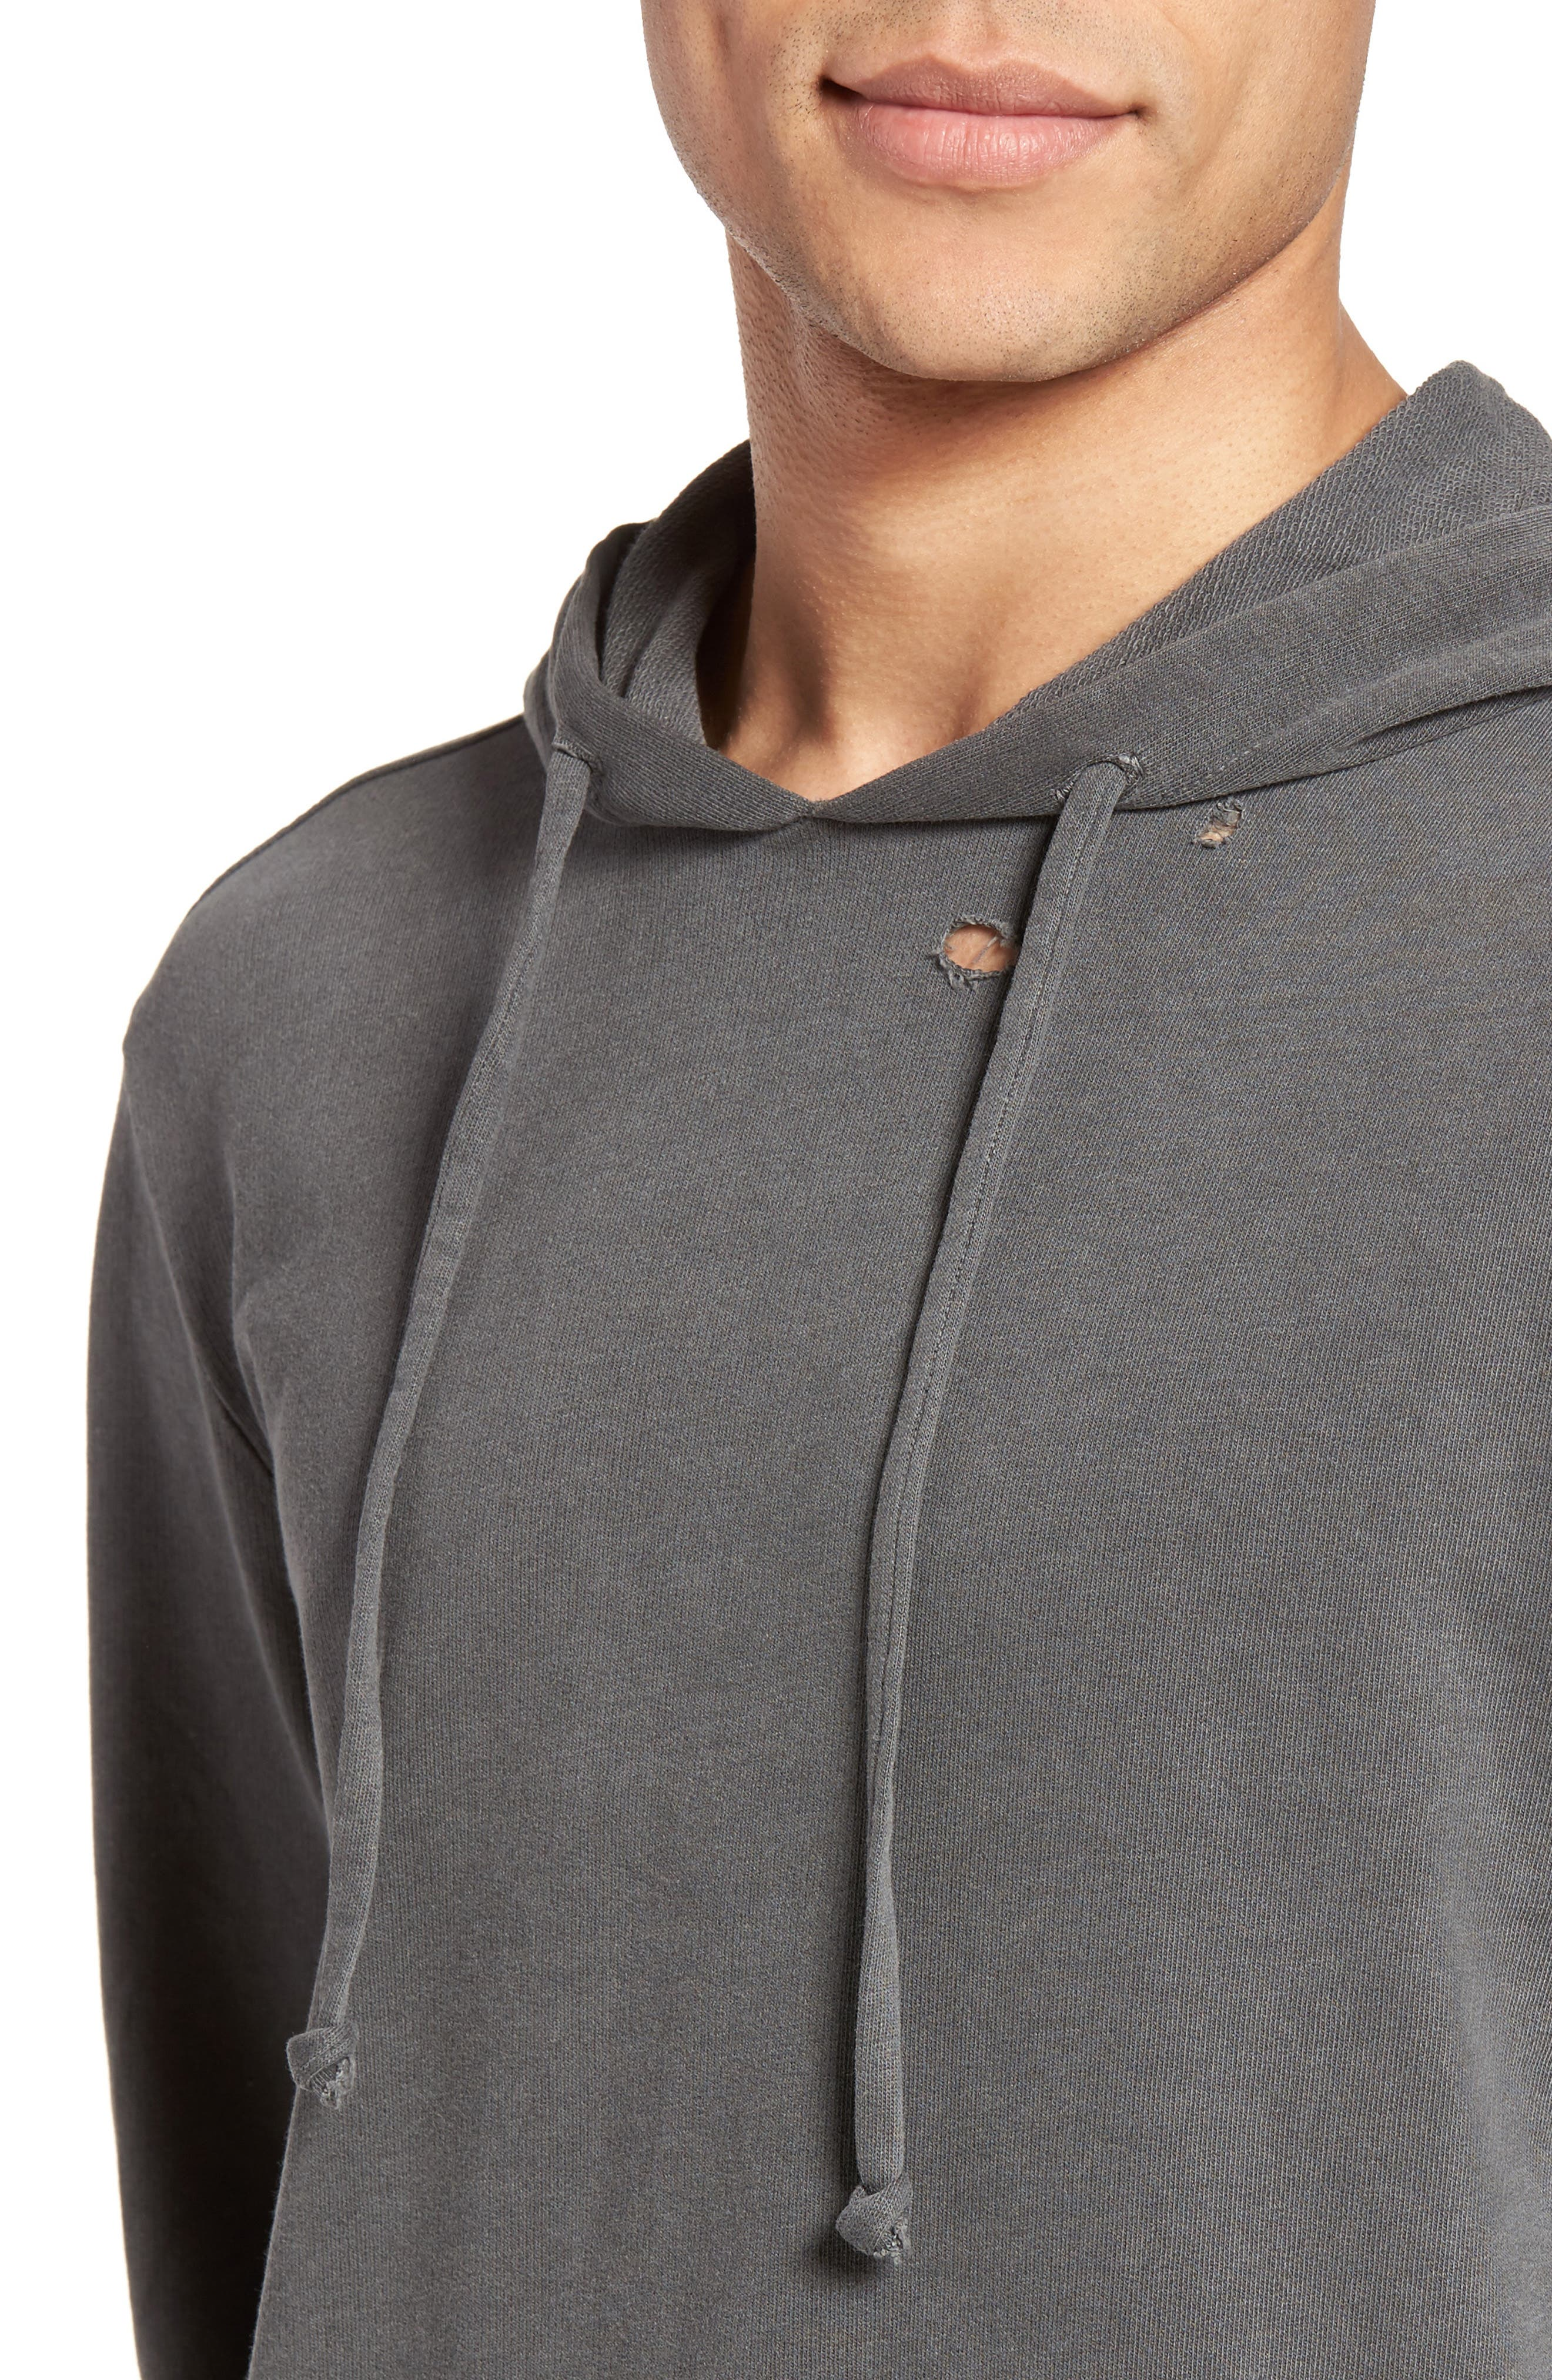 Eloi Pullover Hoodie,                             Alternate thumbnail 4, color,                             022